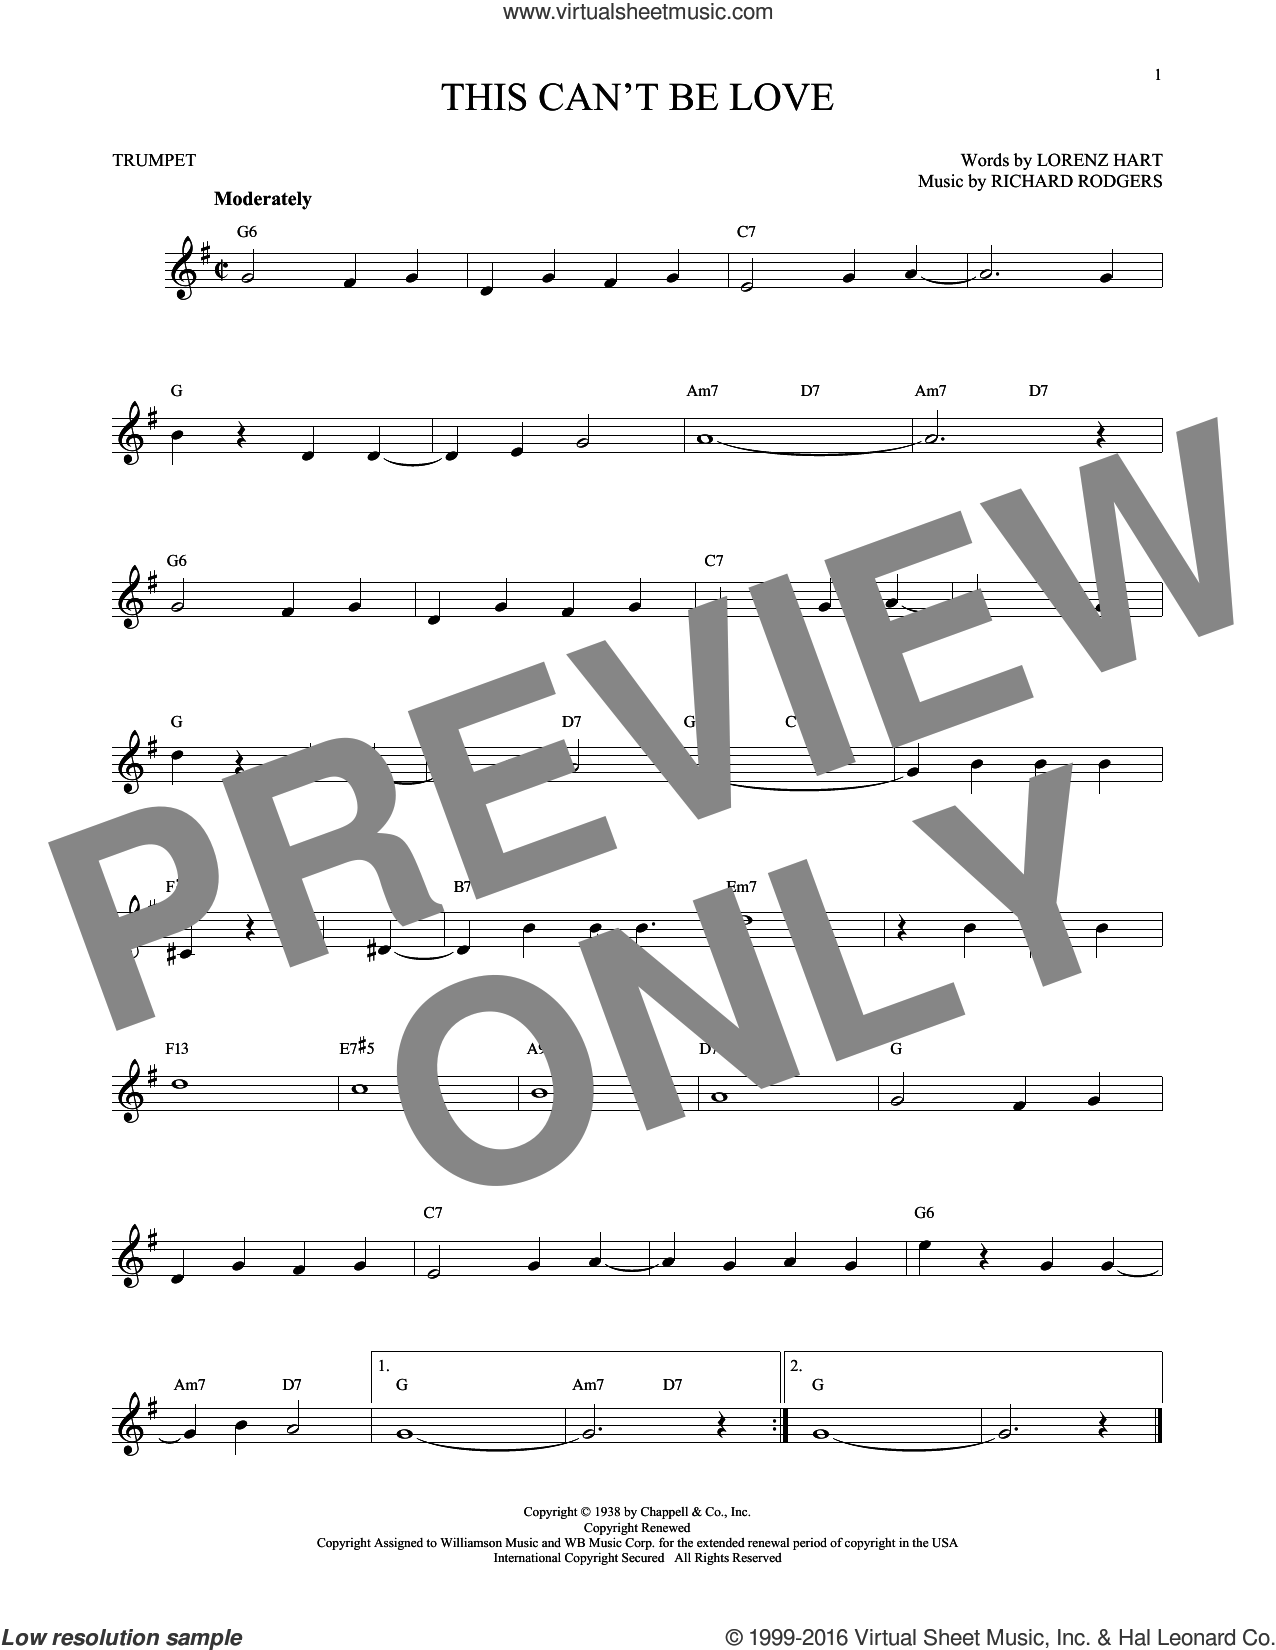 This Can't Be Love sheet music for trumpet solo by Richard Rodgers